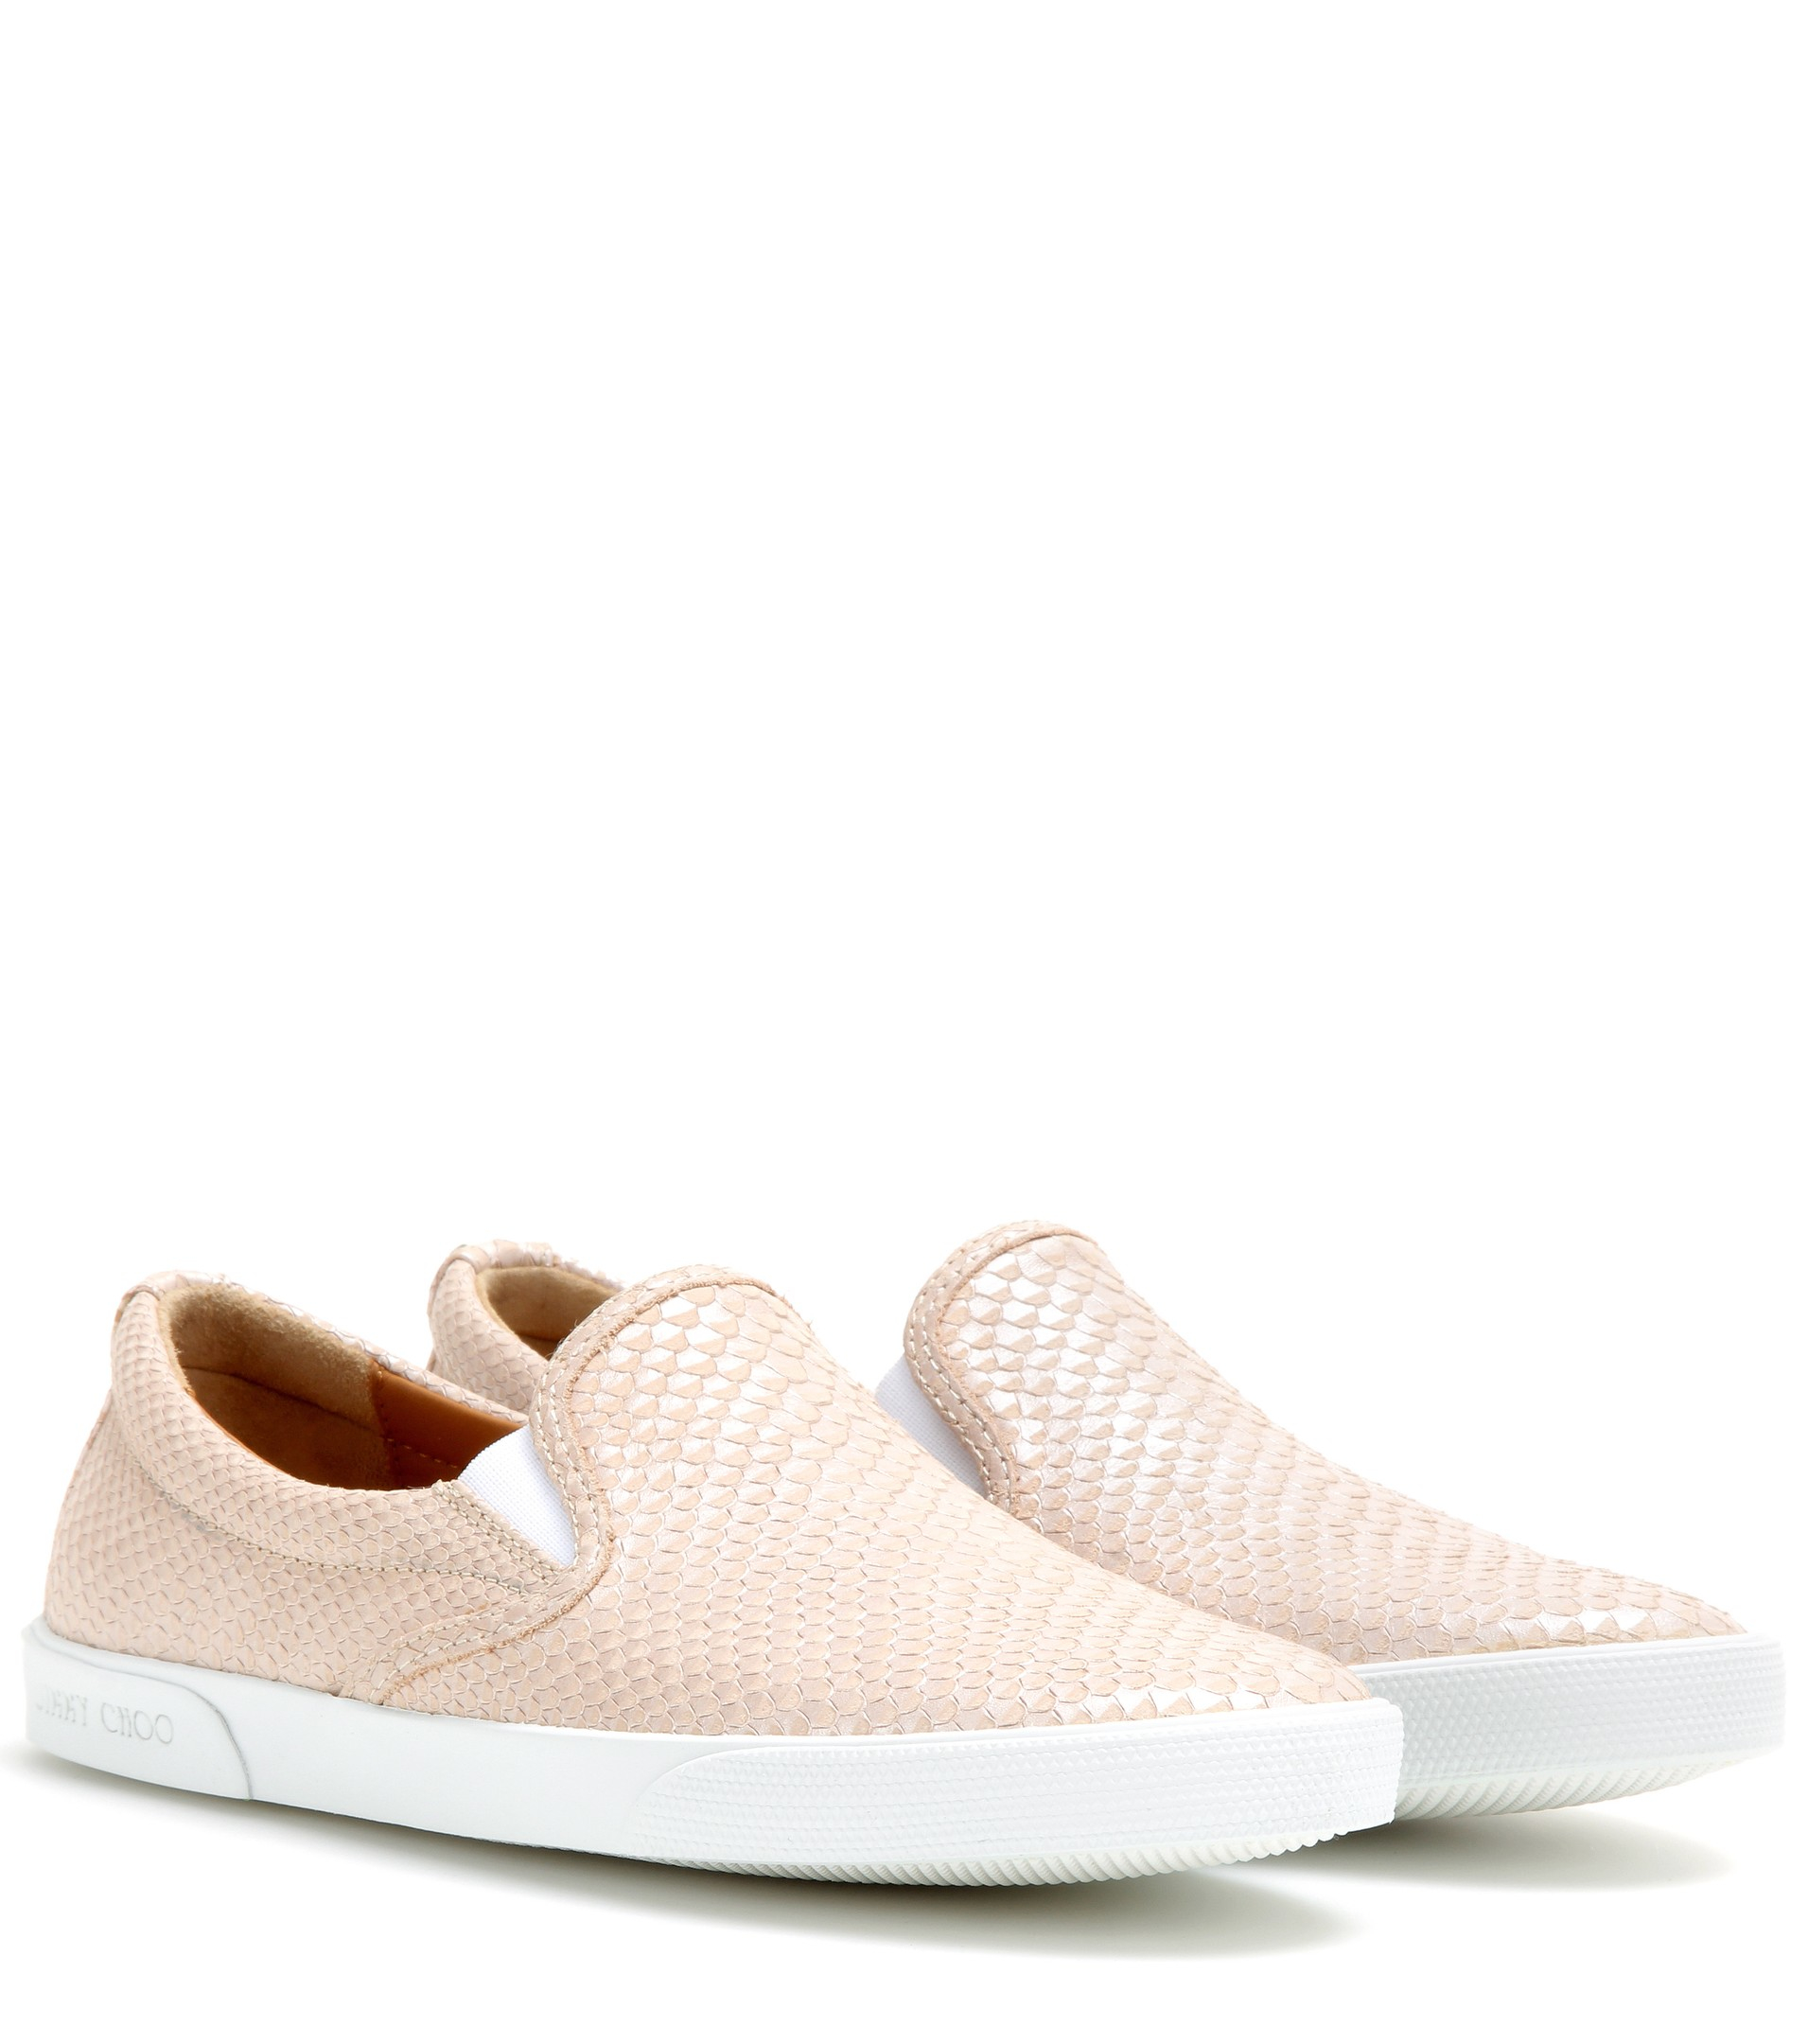 353b4123af9 Jimmy Choo Demi Embossed Leather Slip-on Sneakers in Natural - Lyst